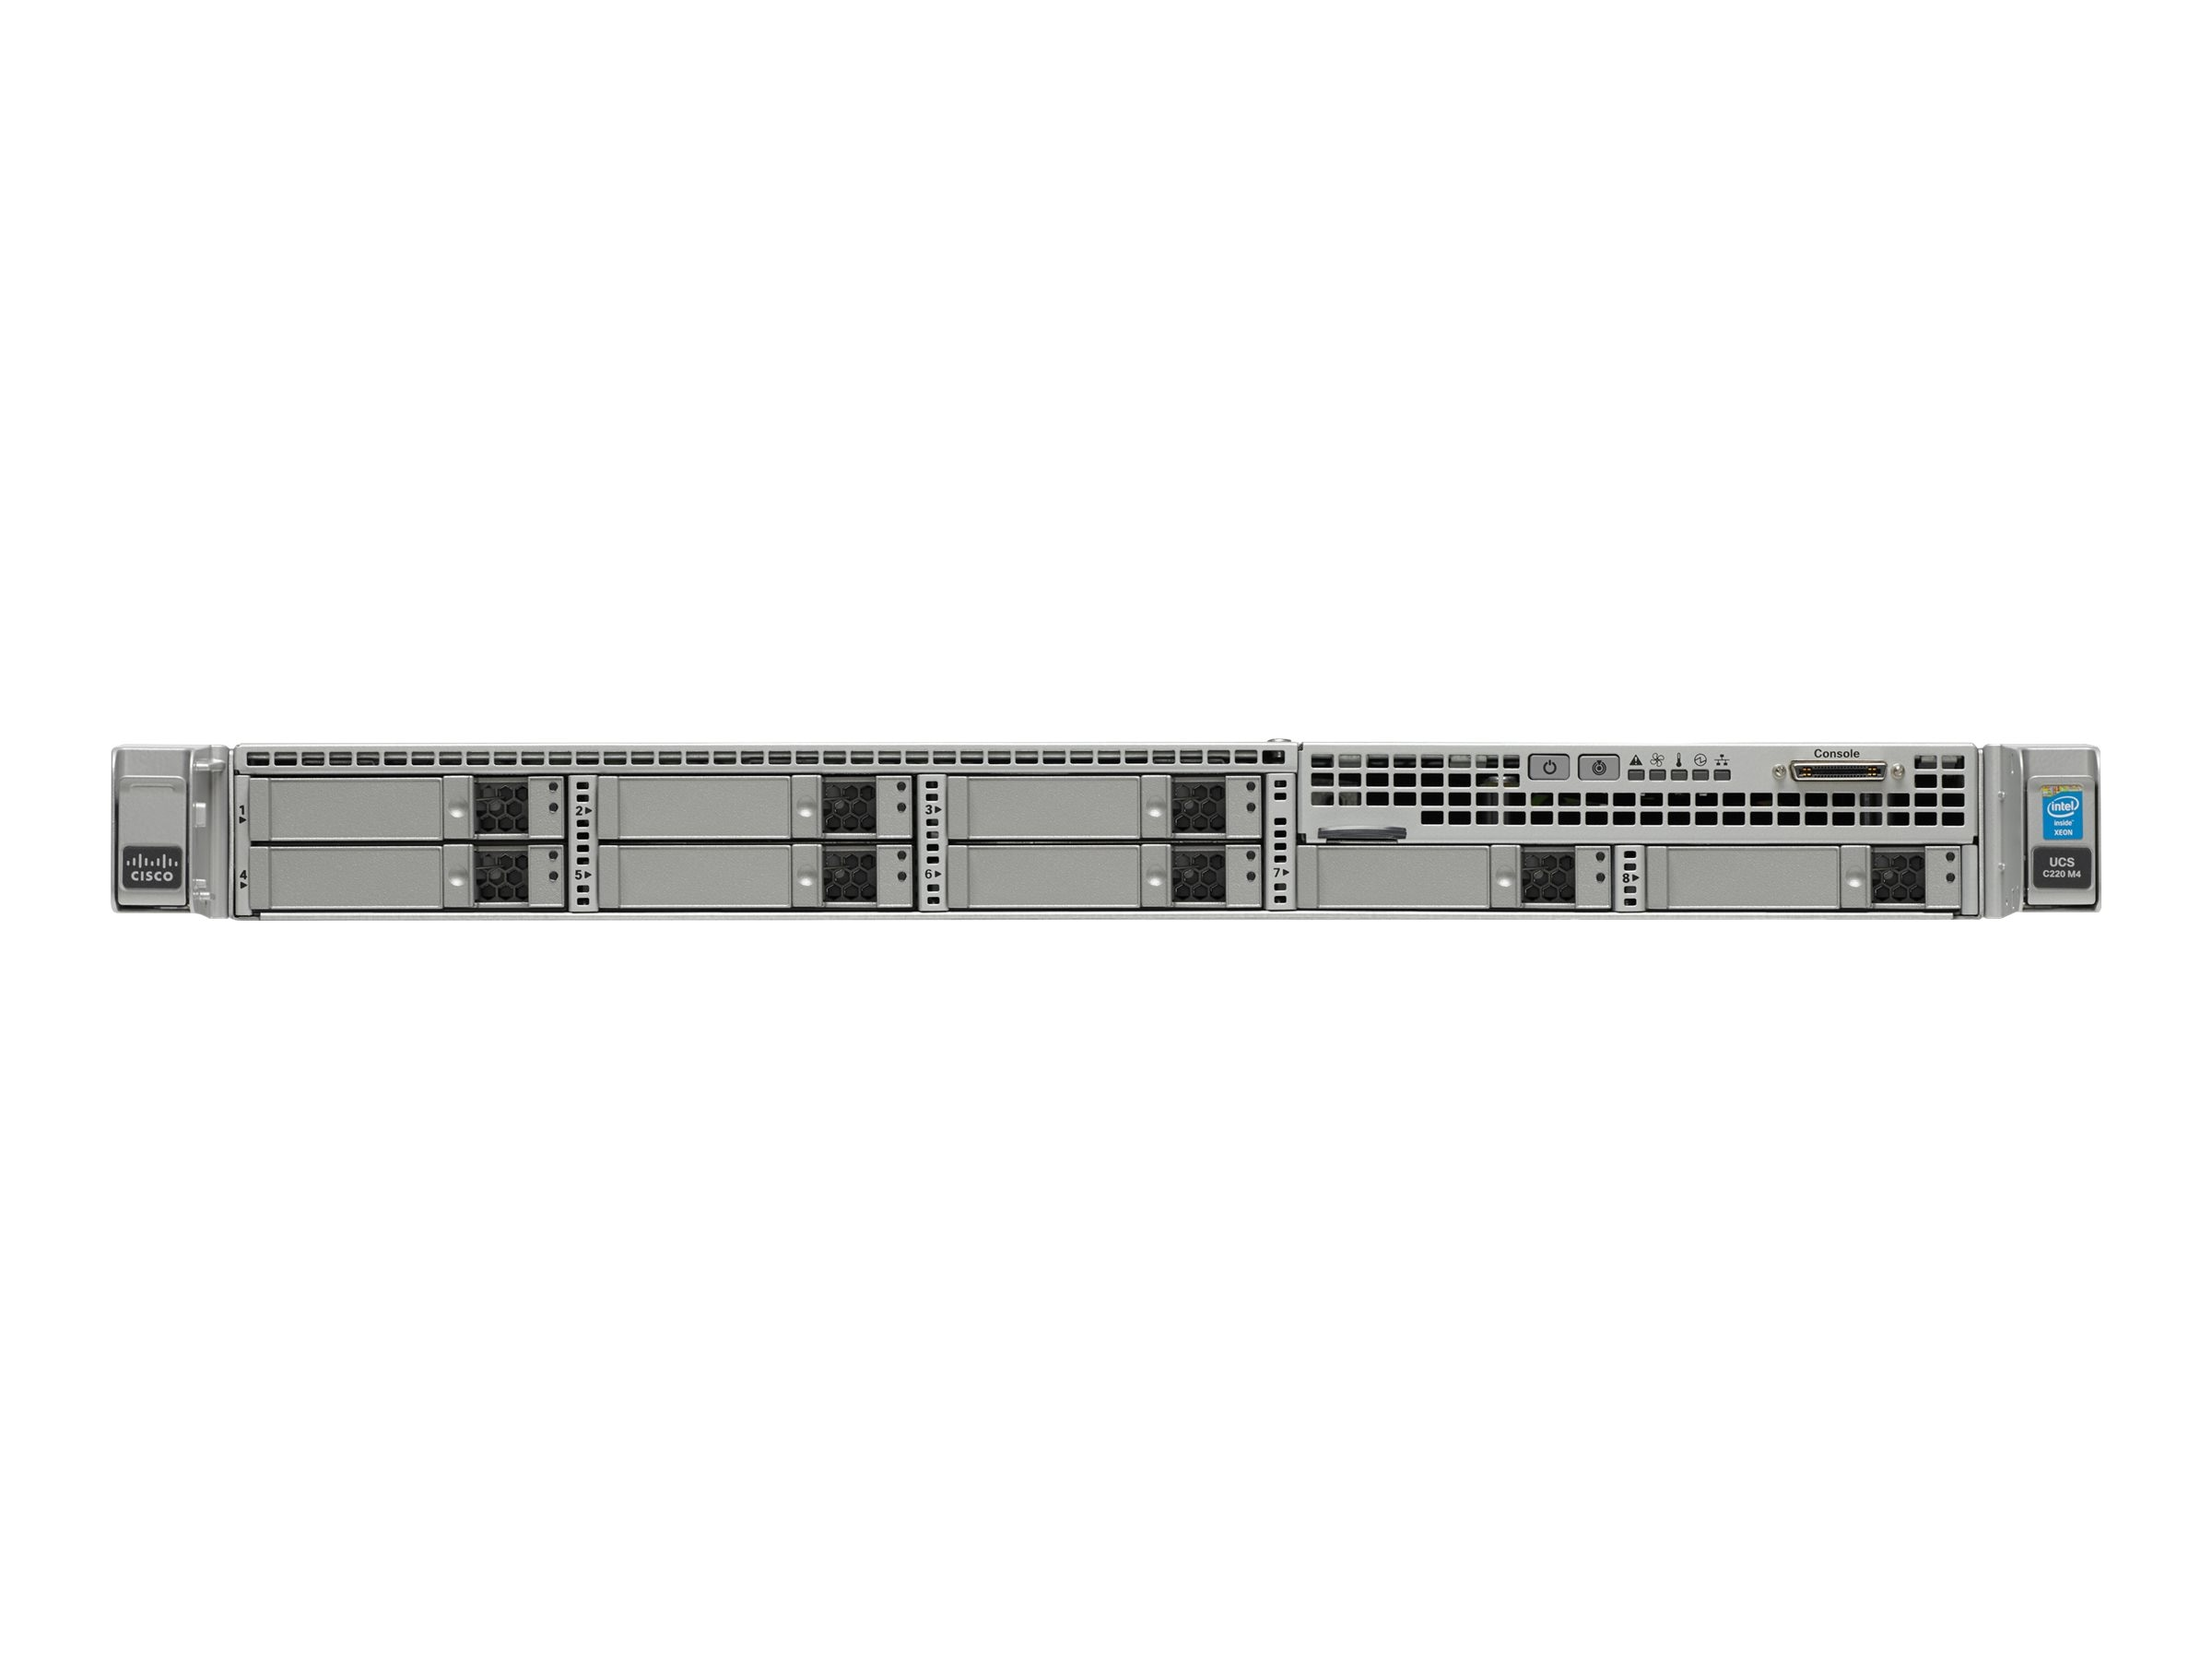 Cisco UCS-SP-C220M4-B-A2 Image 2